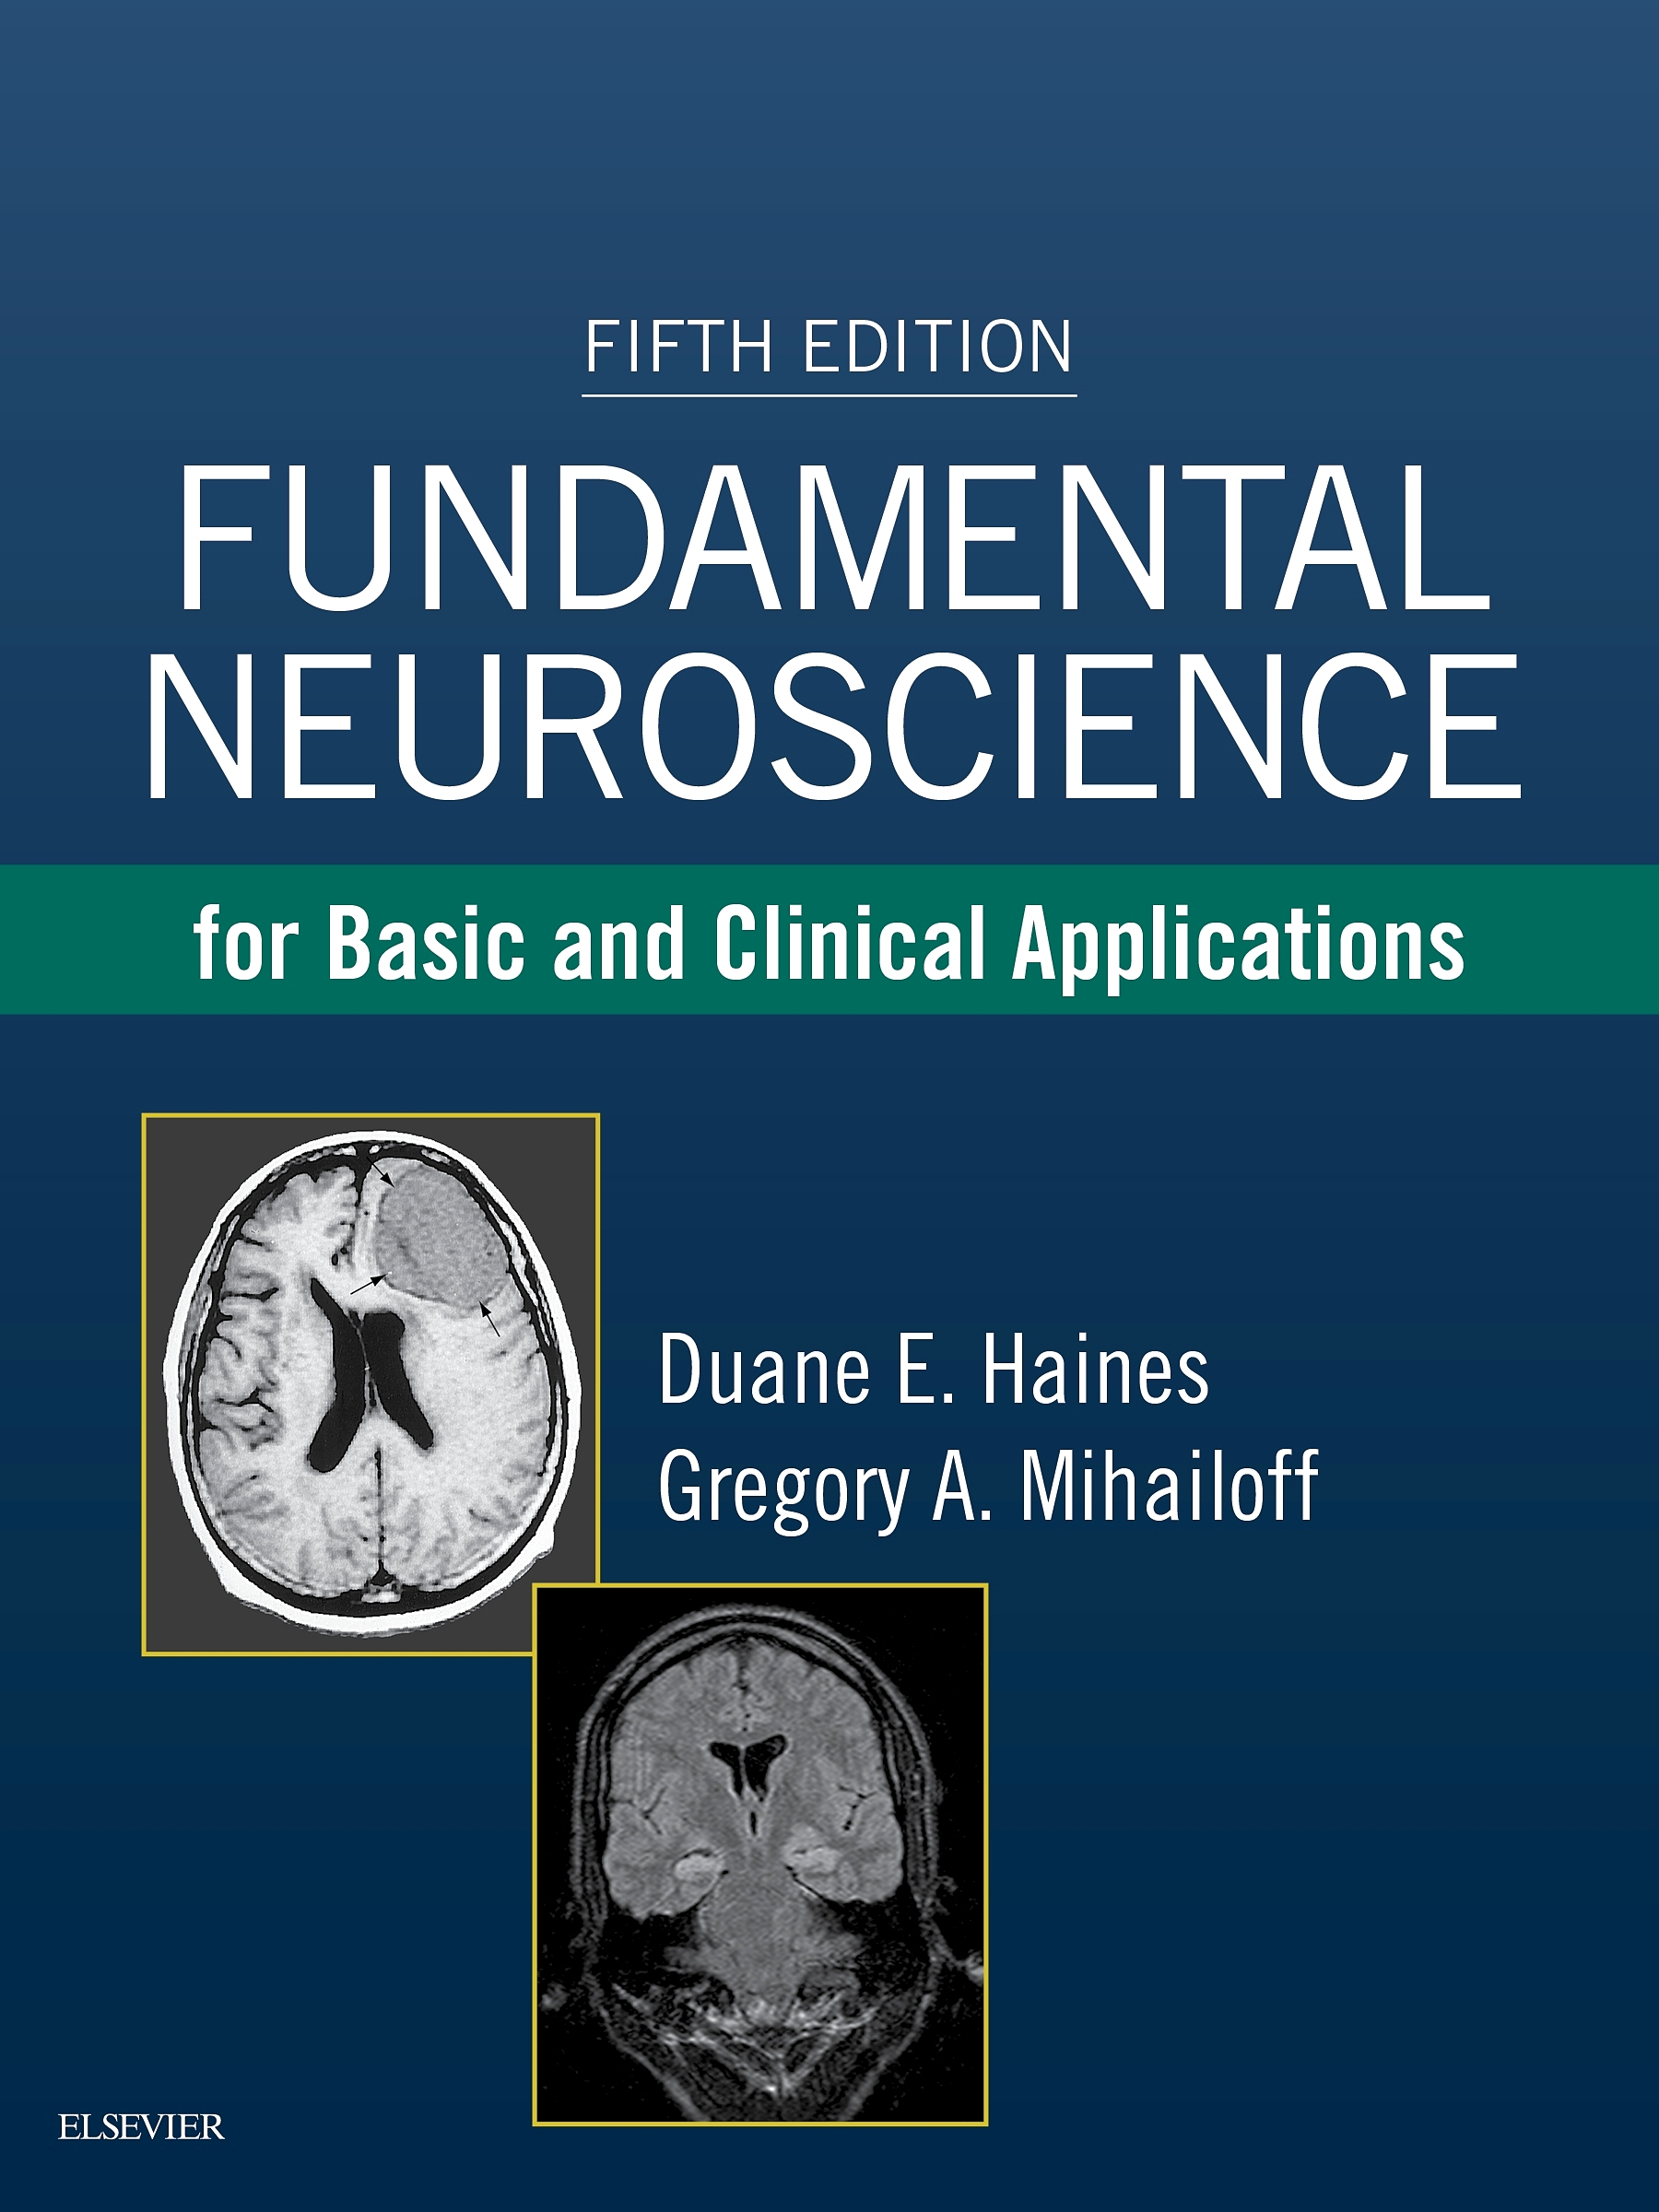 Evolve Resources for Fundamental Neuroscience for Basic and Clinical Applications, 5th Edition